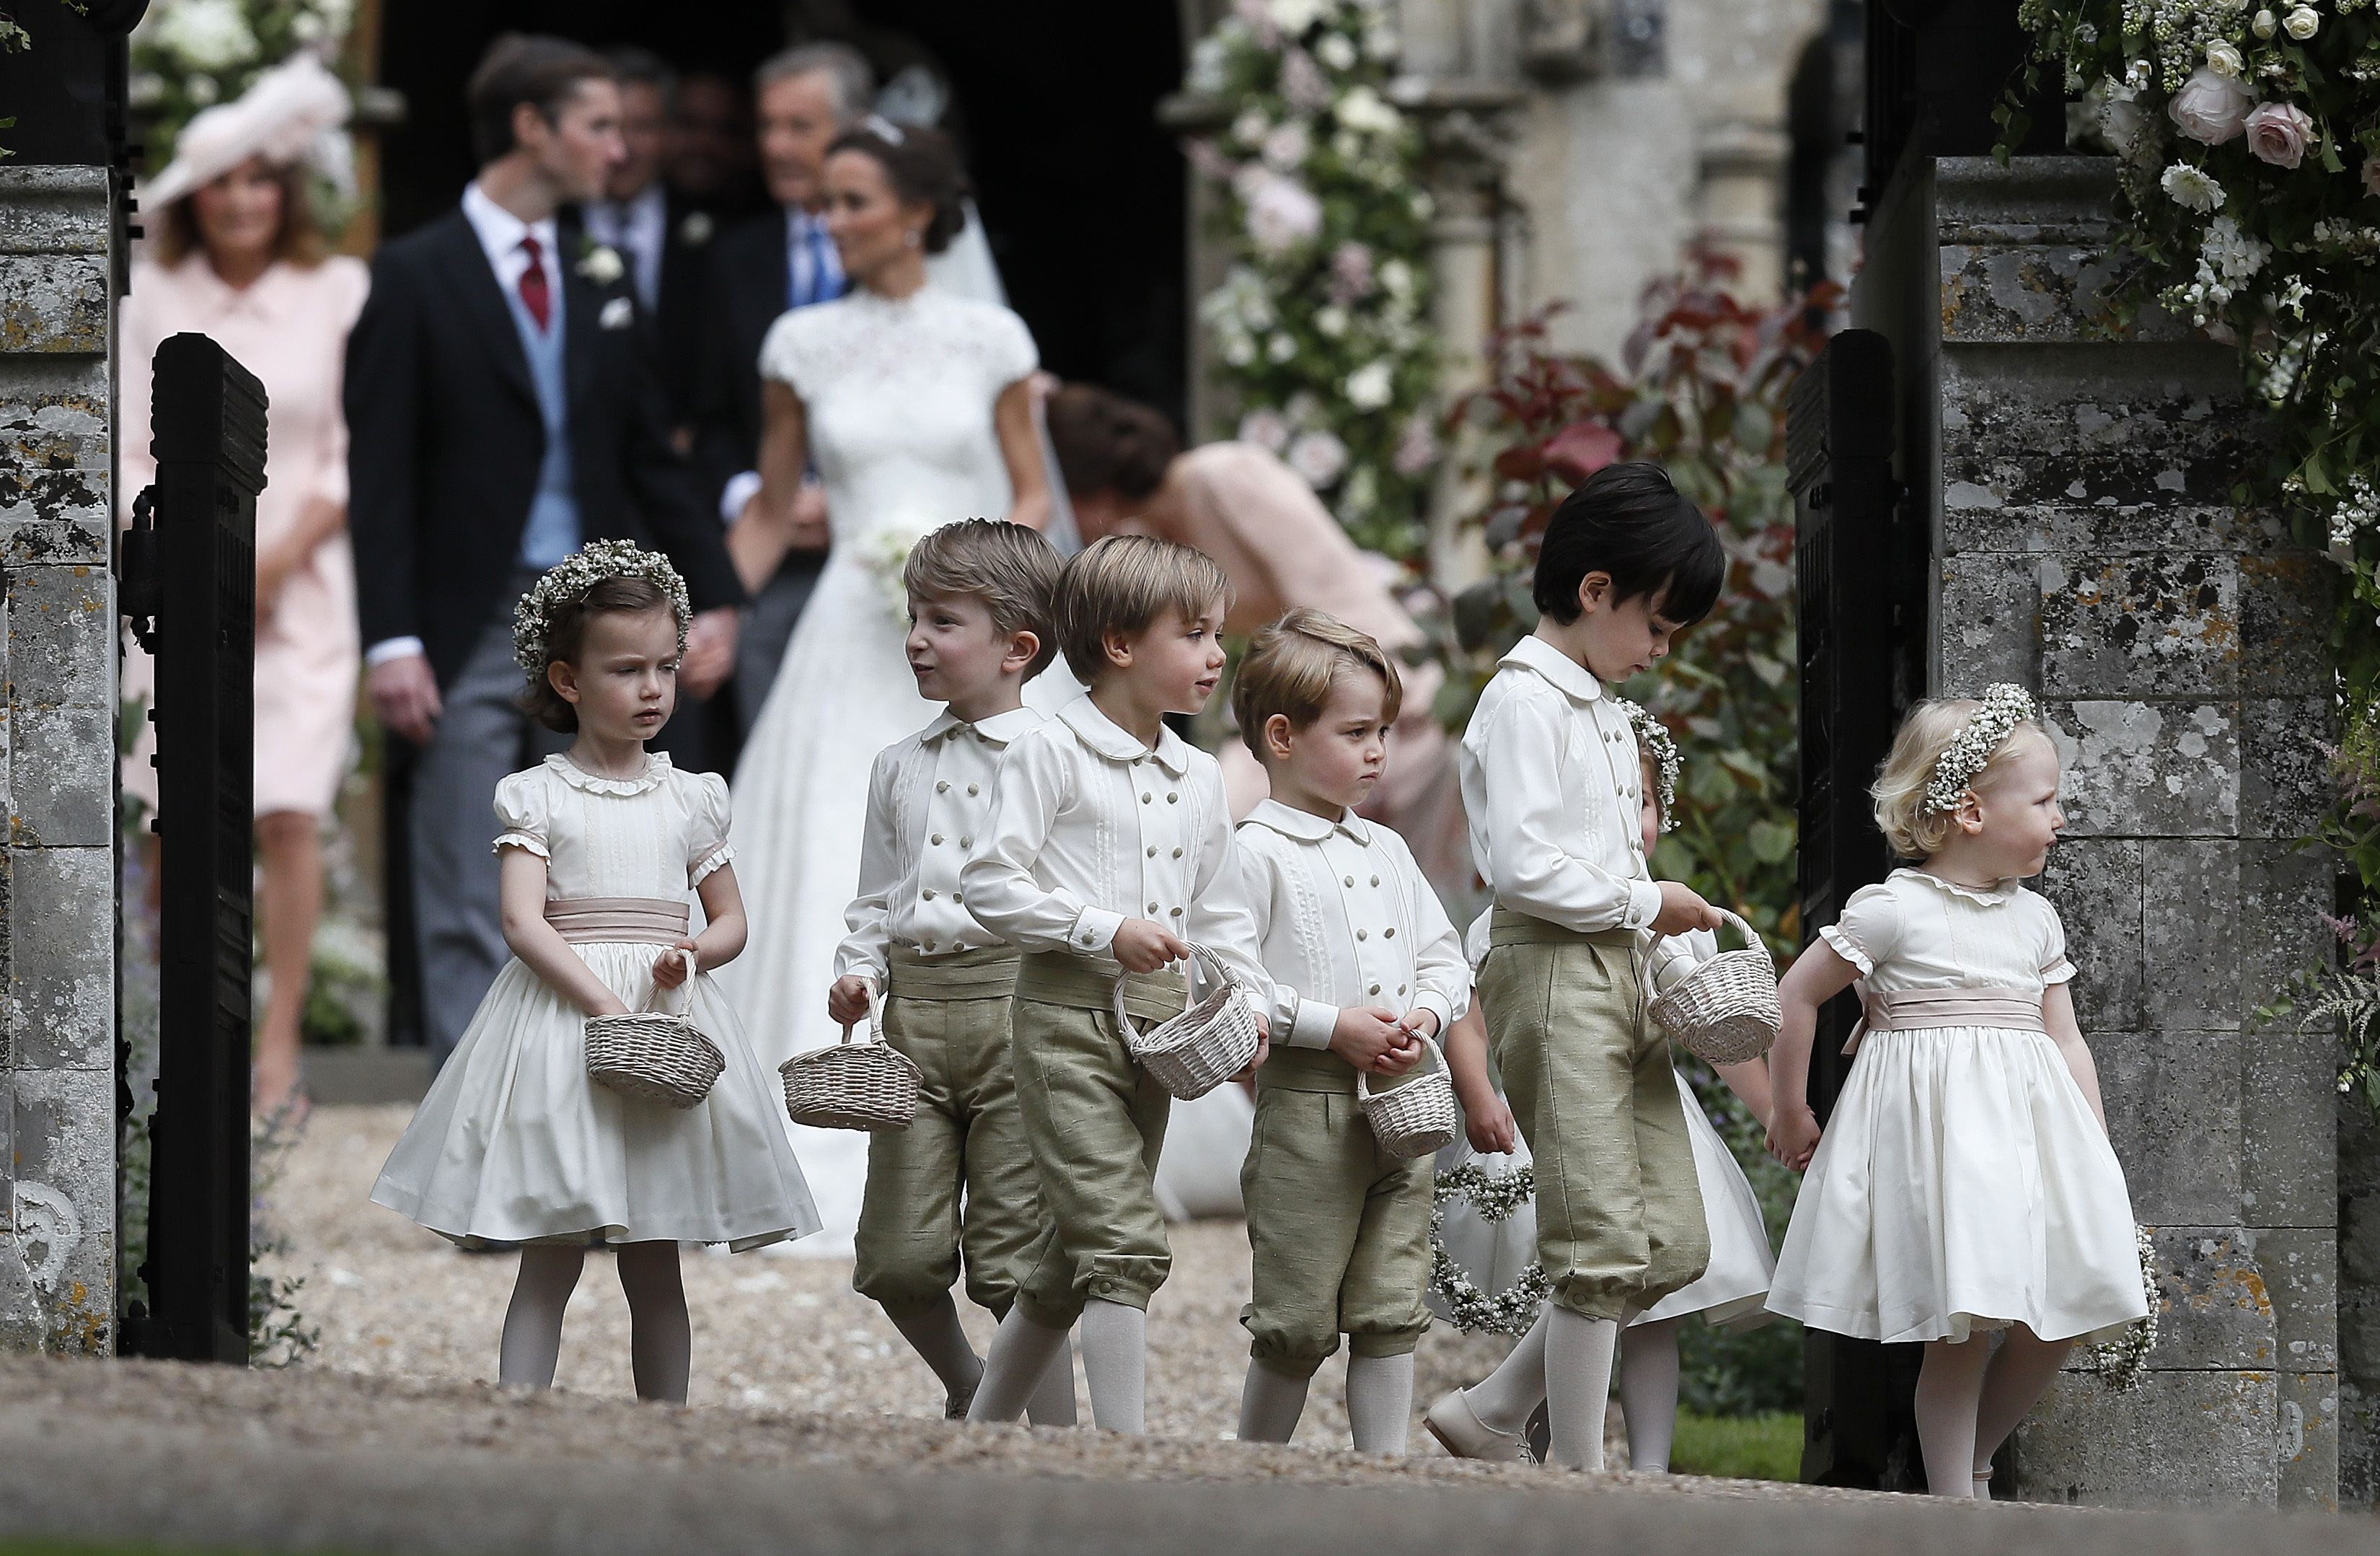 Prince George, fourth left, stands with other flower boys and girls after the wedding of Pippa Middleton and James Matthews at St Mark's Church onMay 20, 2017 in Englefield, England.